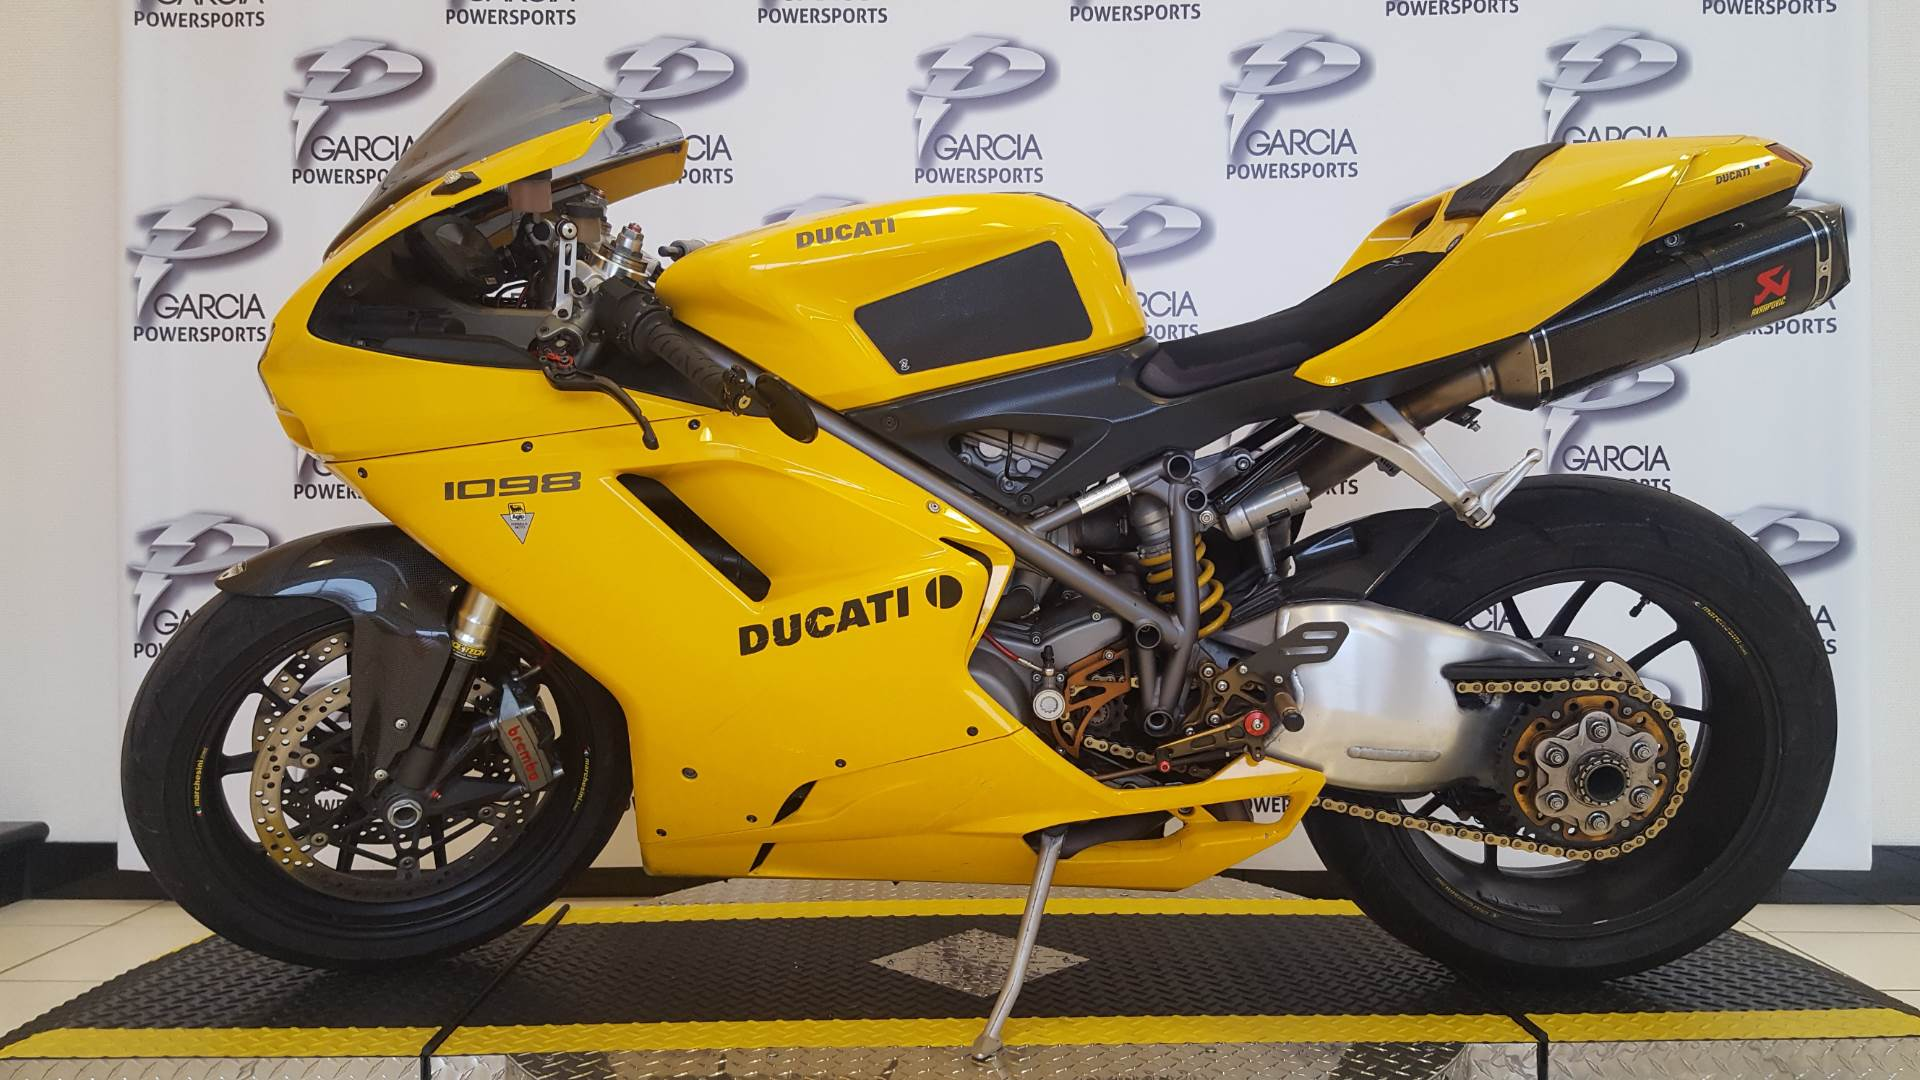 2008 Ducati Superbike 1098 in Albuquerque, New Mexico